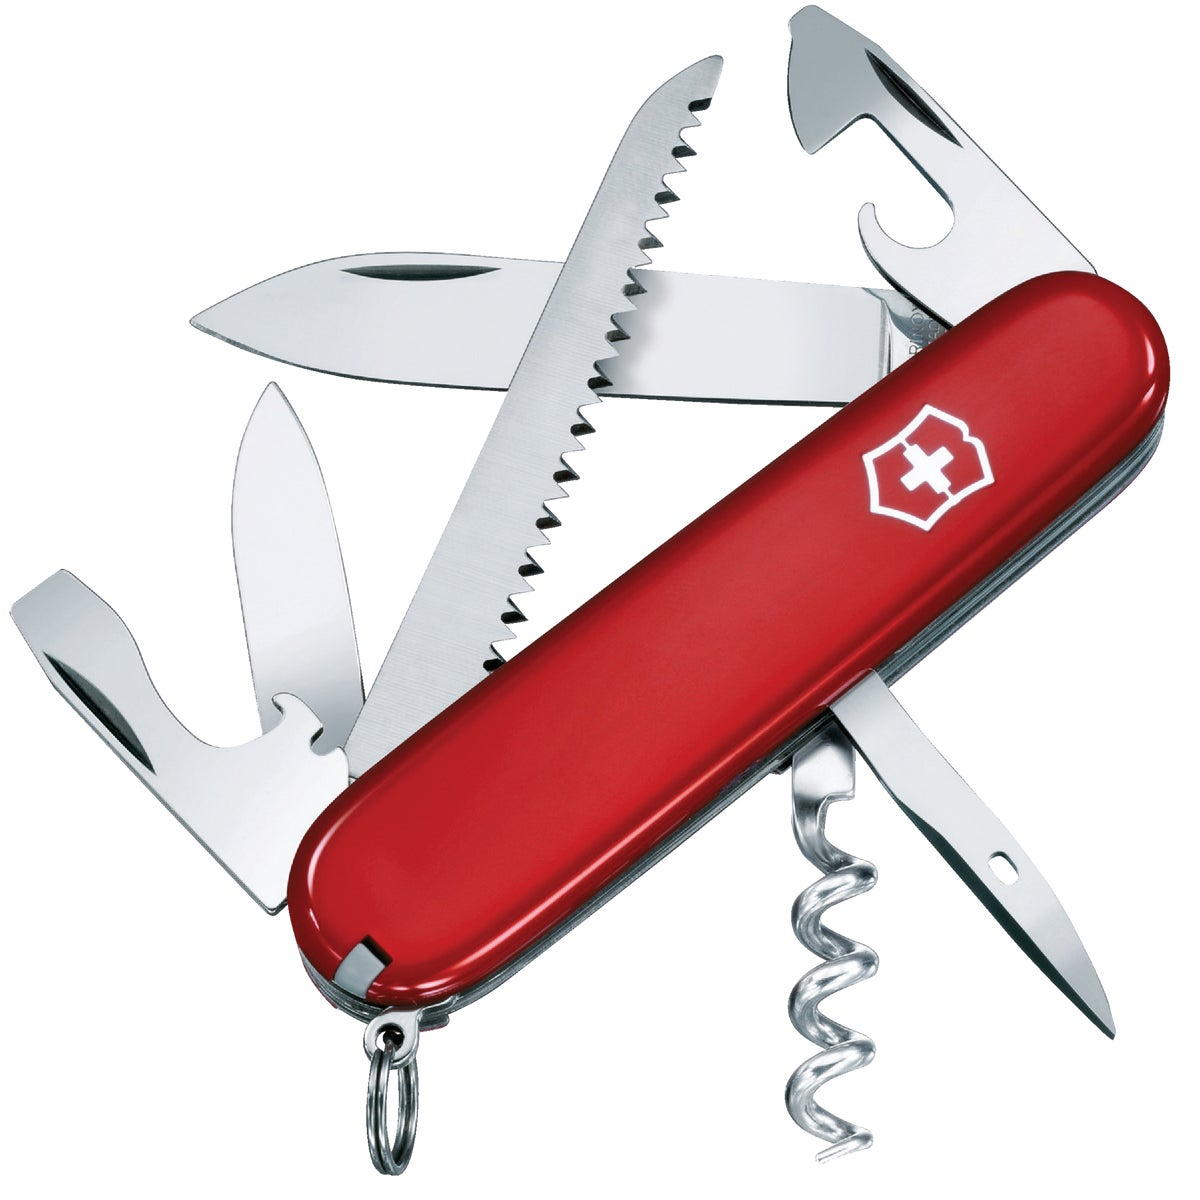 CAMPER KNIFE - 53301 by Victorinox Swis Army